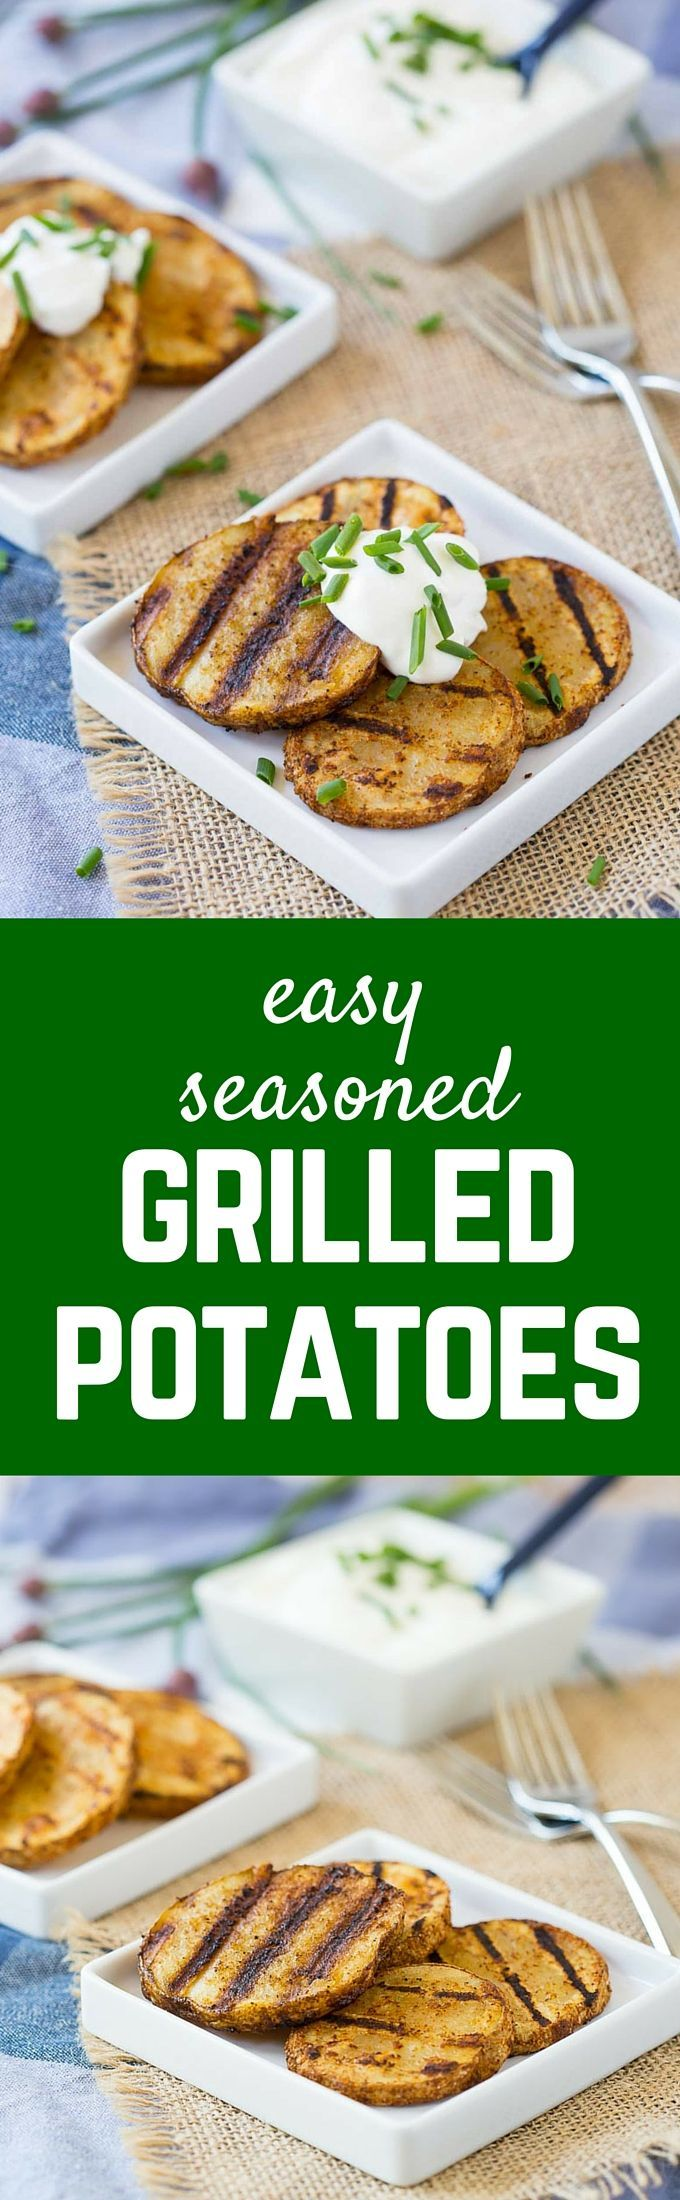 Complete your barbecued meal with these easy and flavorful seasoned grilled potatoes. They have the perfect amount of spice and can cook on your grill with your other food. Get the recipe on http://RachelCooks.com!